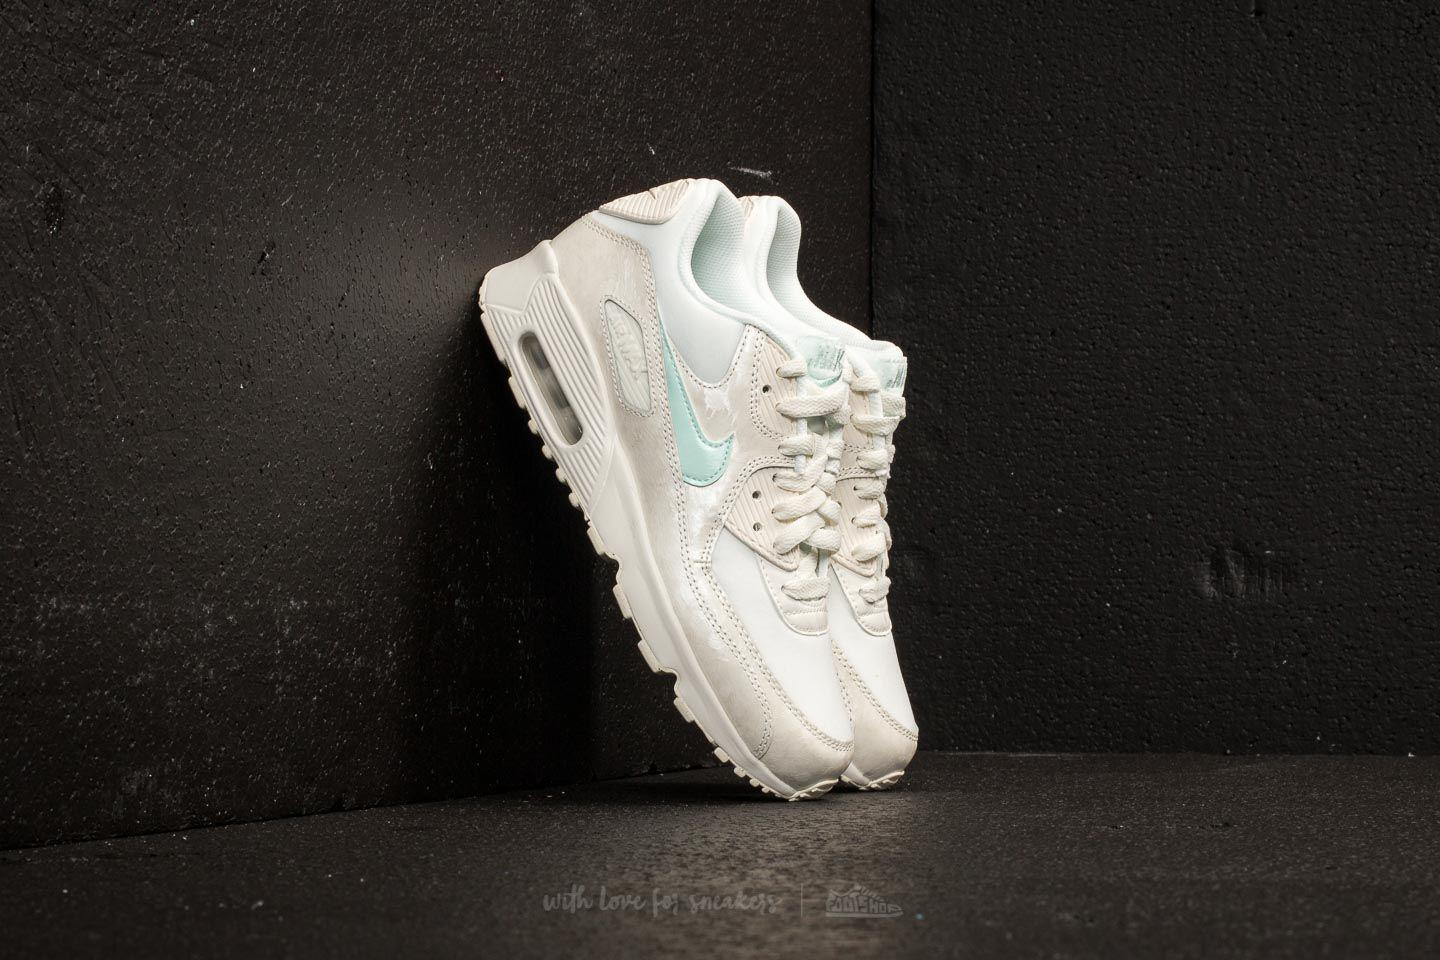 Lyst Nike Air Max 90 Mesh (gs) Sail/ Igloo in Black